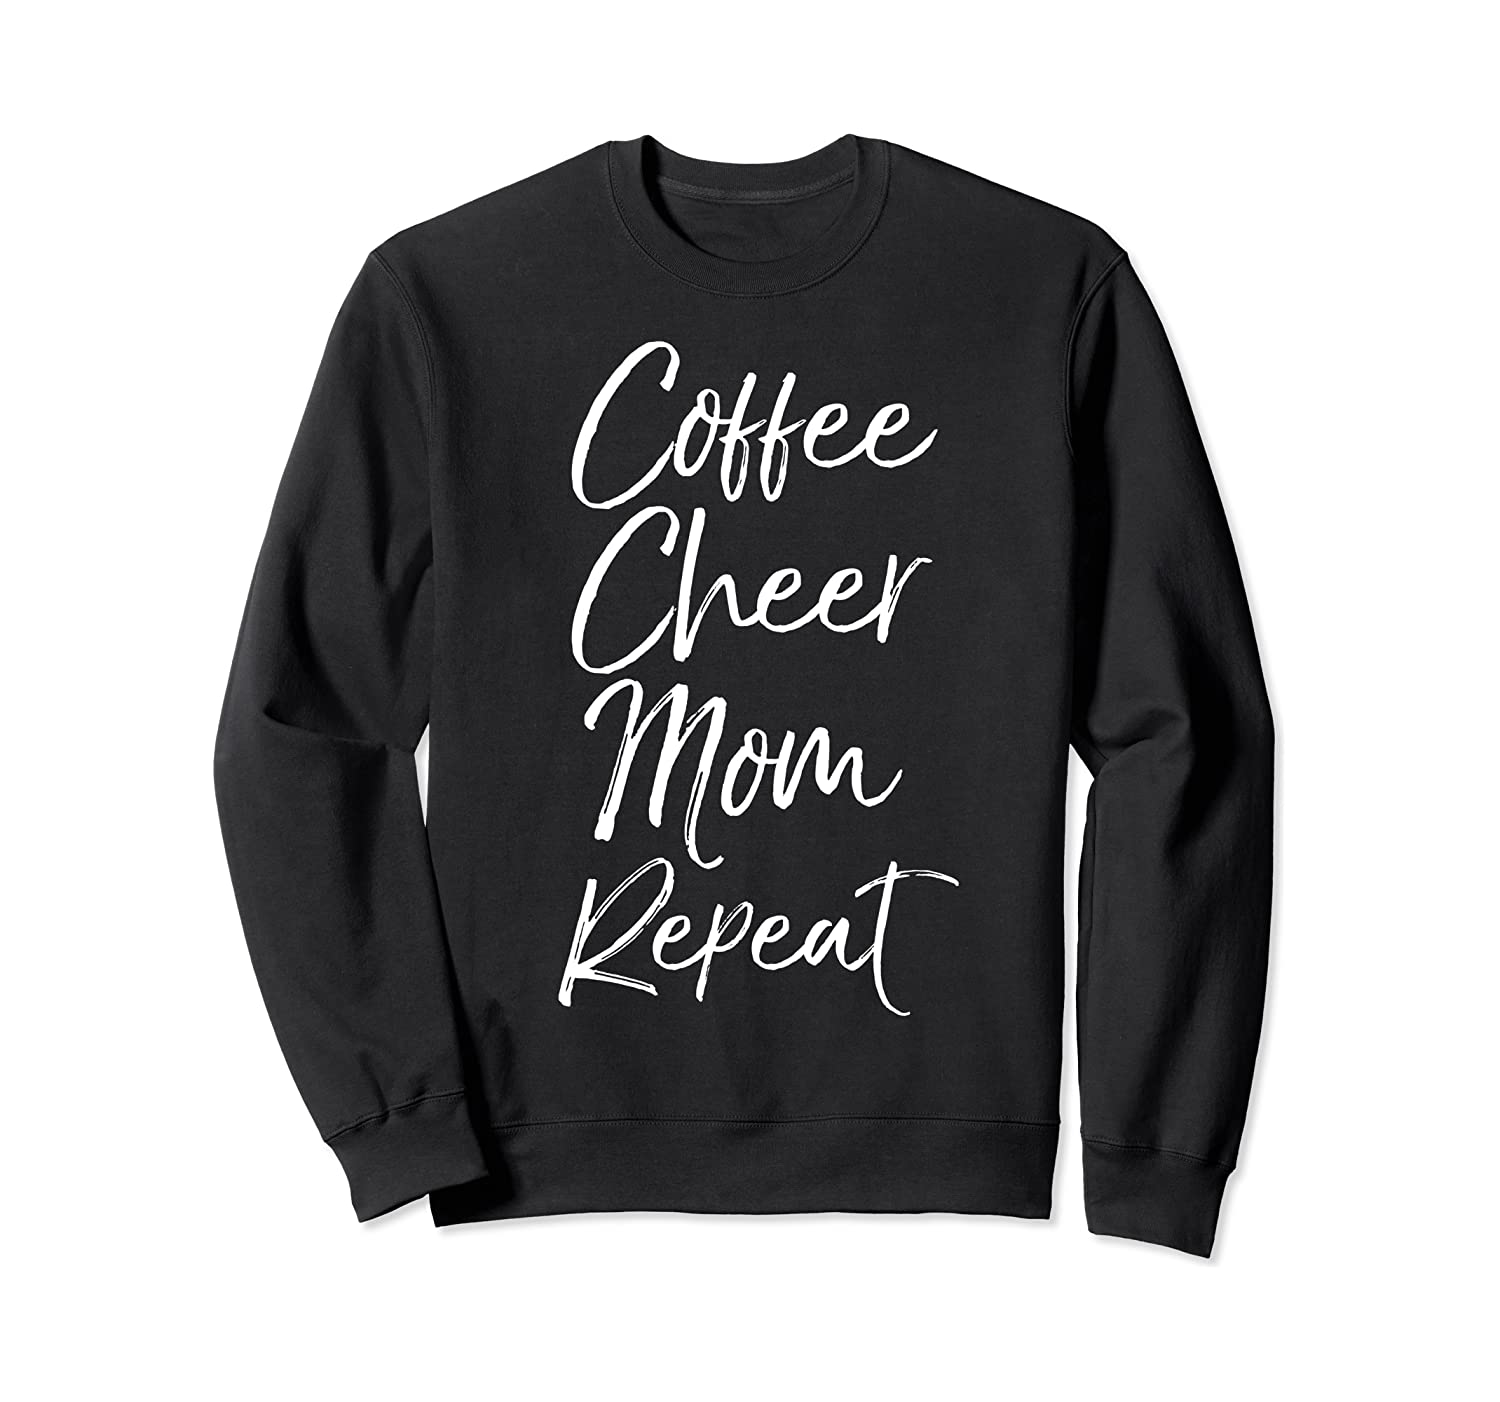 Cheerleader Mother Gift for Women Coffee Cheer Mom Repeat Sweatshirt